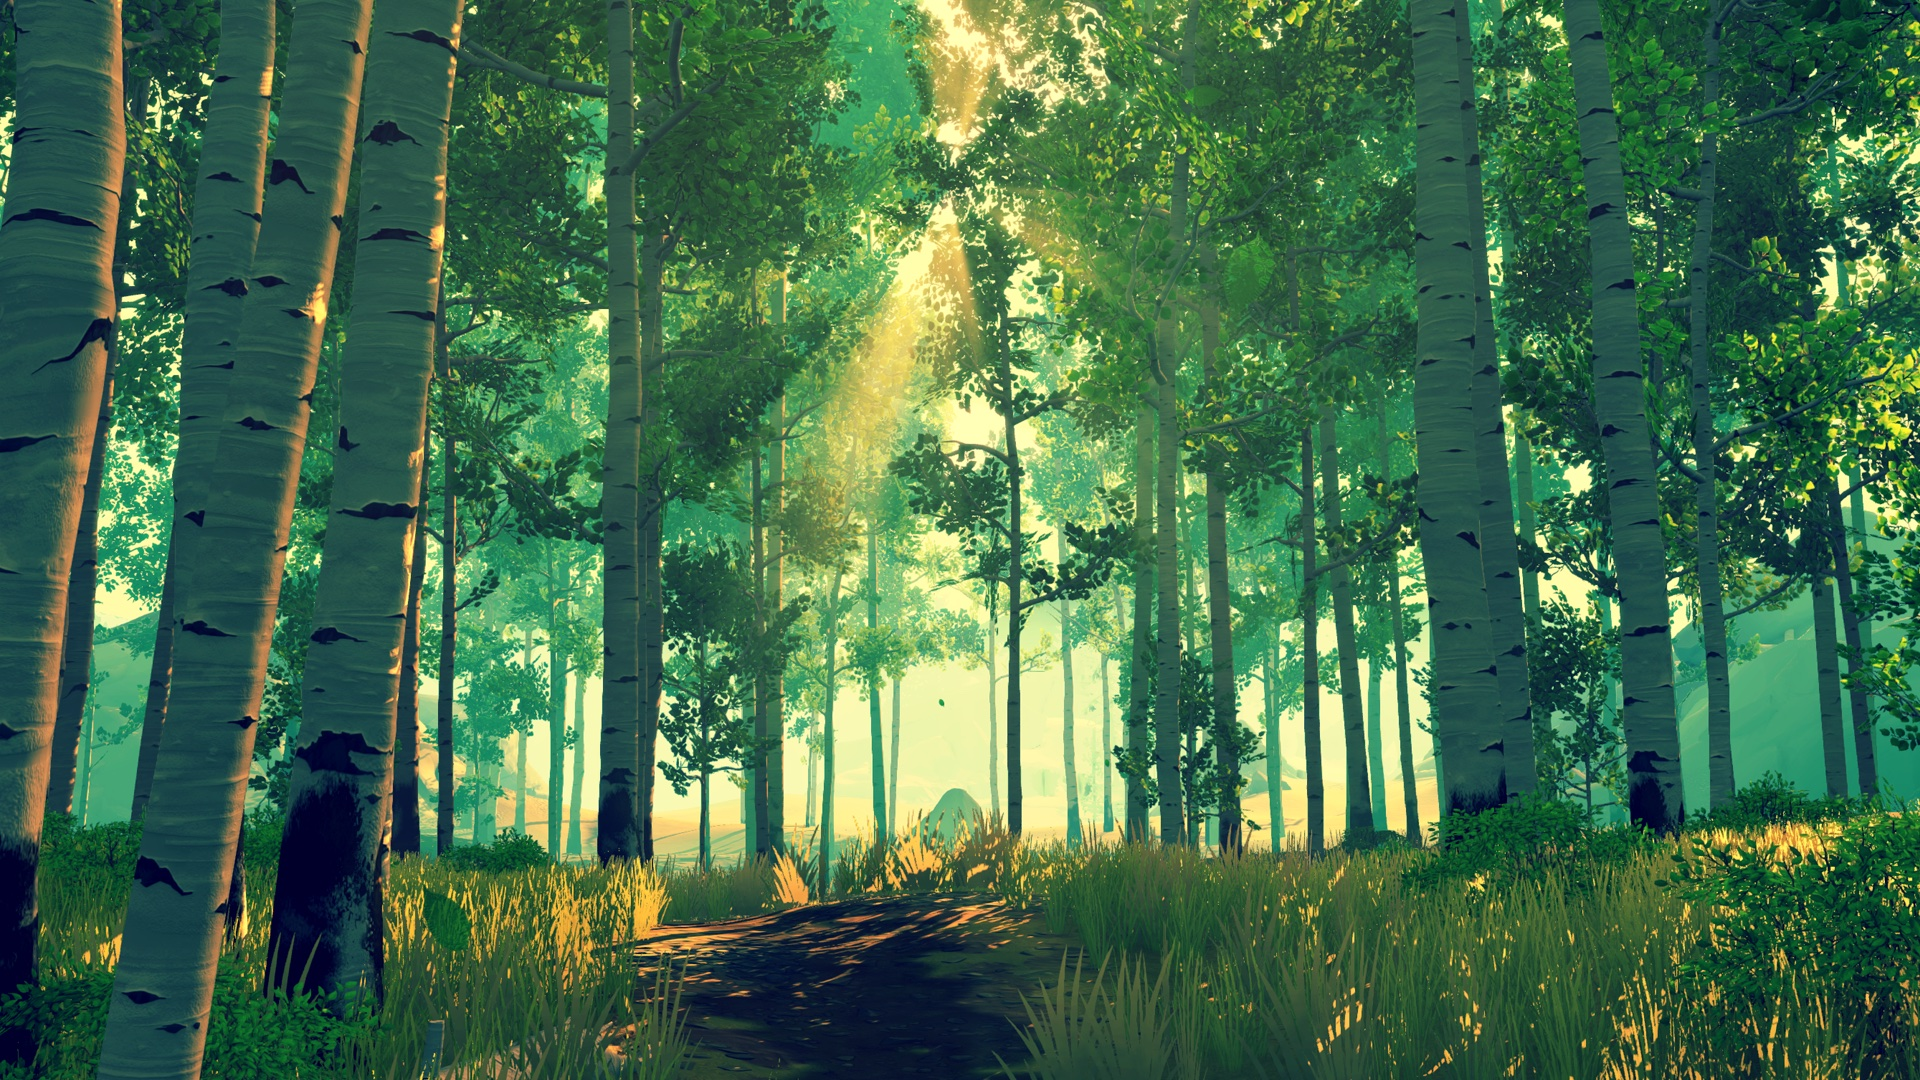 Firewatch preview: stunning mystery adventure for Mac set in Wyoming wilderness